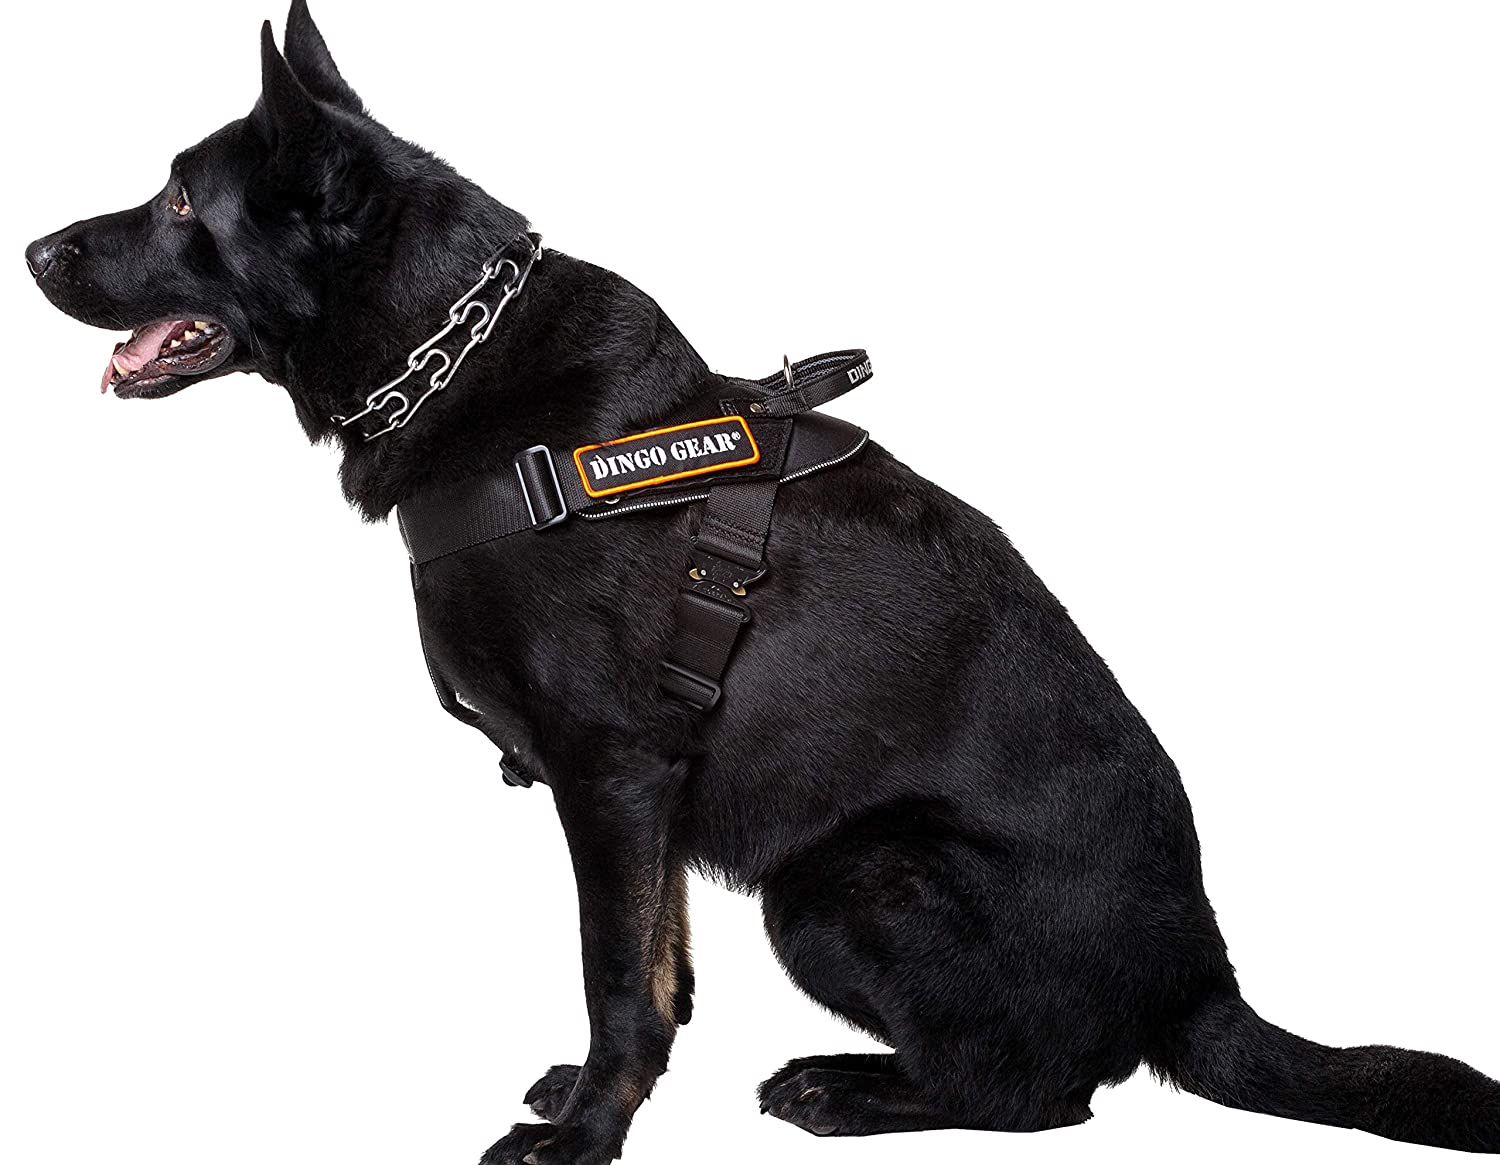 XL DINGO GEAR Multifunctional Harness For Dog In Work, Guard Dog Training, K9 and Ipo, Cobra System Handmade Black S03197, XL